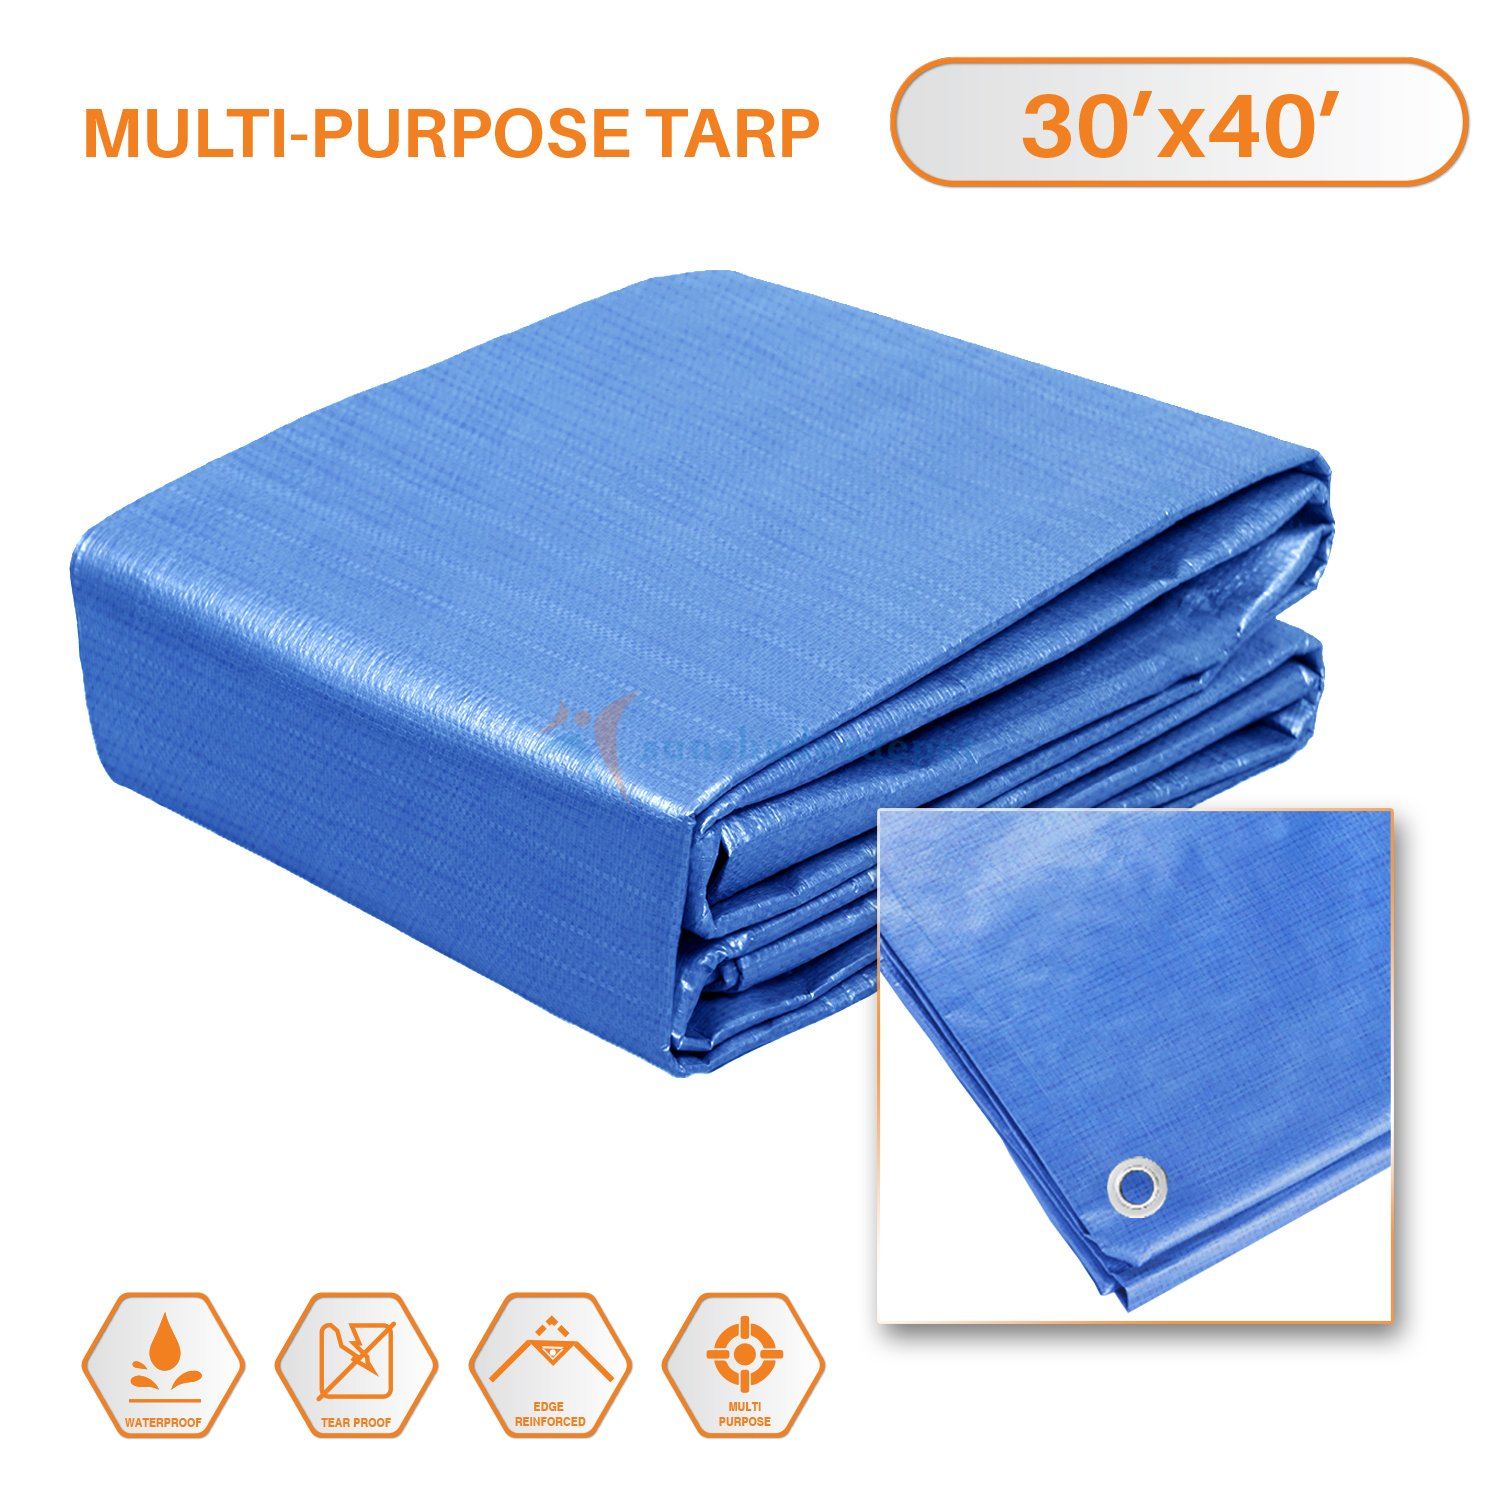 Sunshades Depot 16x20 Feet General Multi-Purpose 5 Mil Waterproof Blue Multi Purpose Waterproof Poly Tarp Cover 5 Mil Thick 8x8 Weave